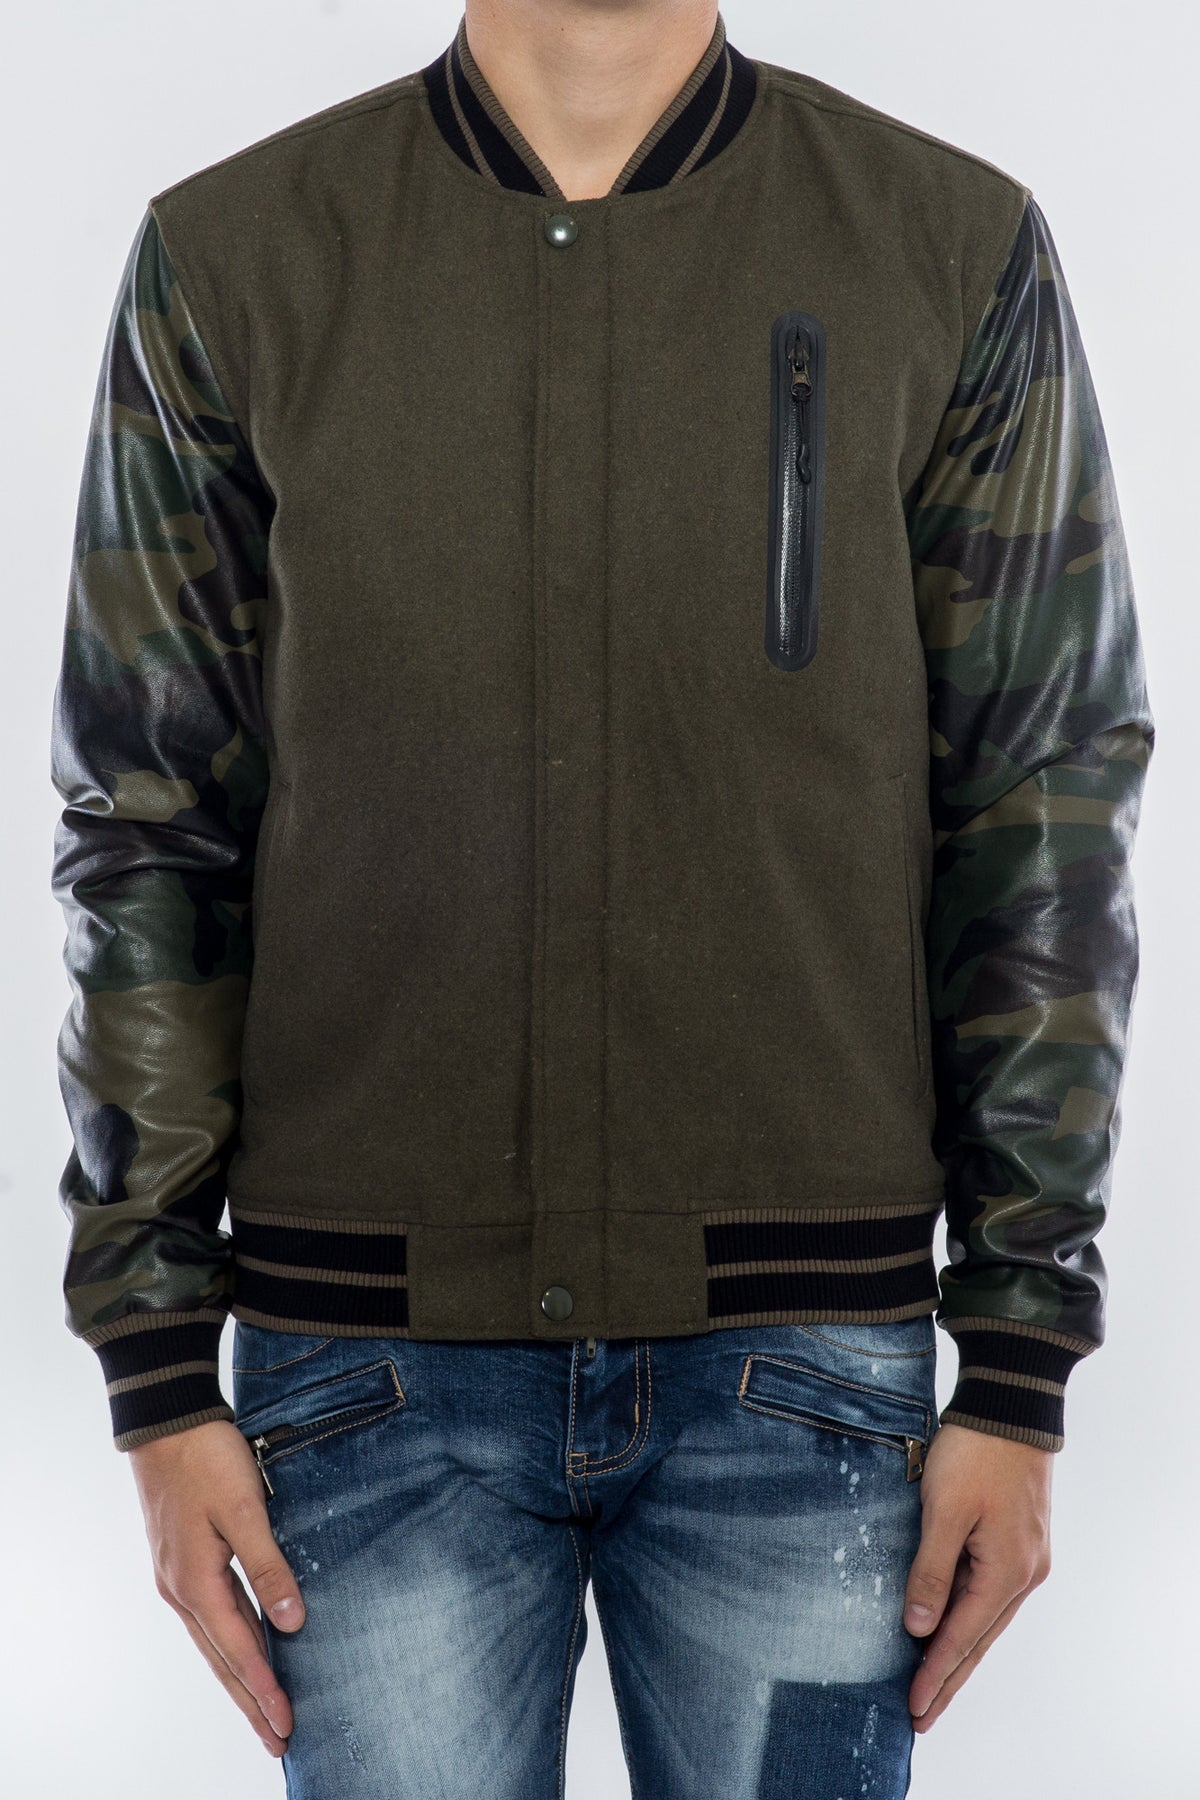 Olive Search And Destroy Wool CAMO VARSITY JACKET H6051111-OLV - cosign1975